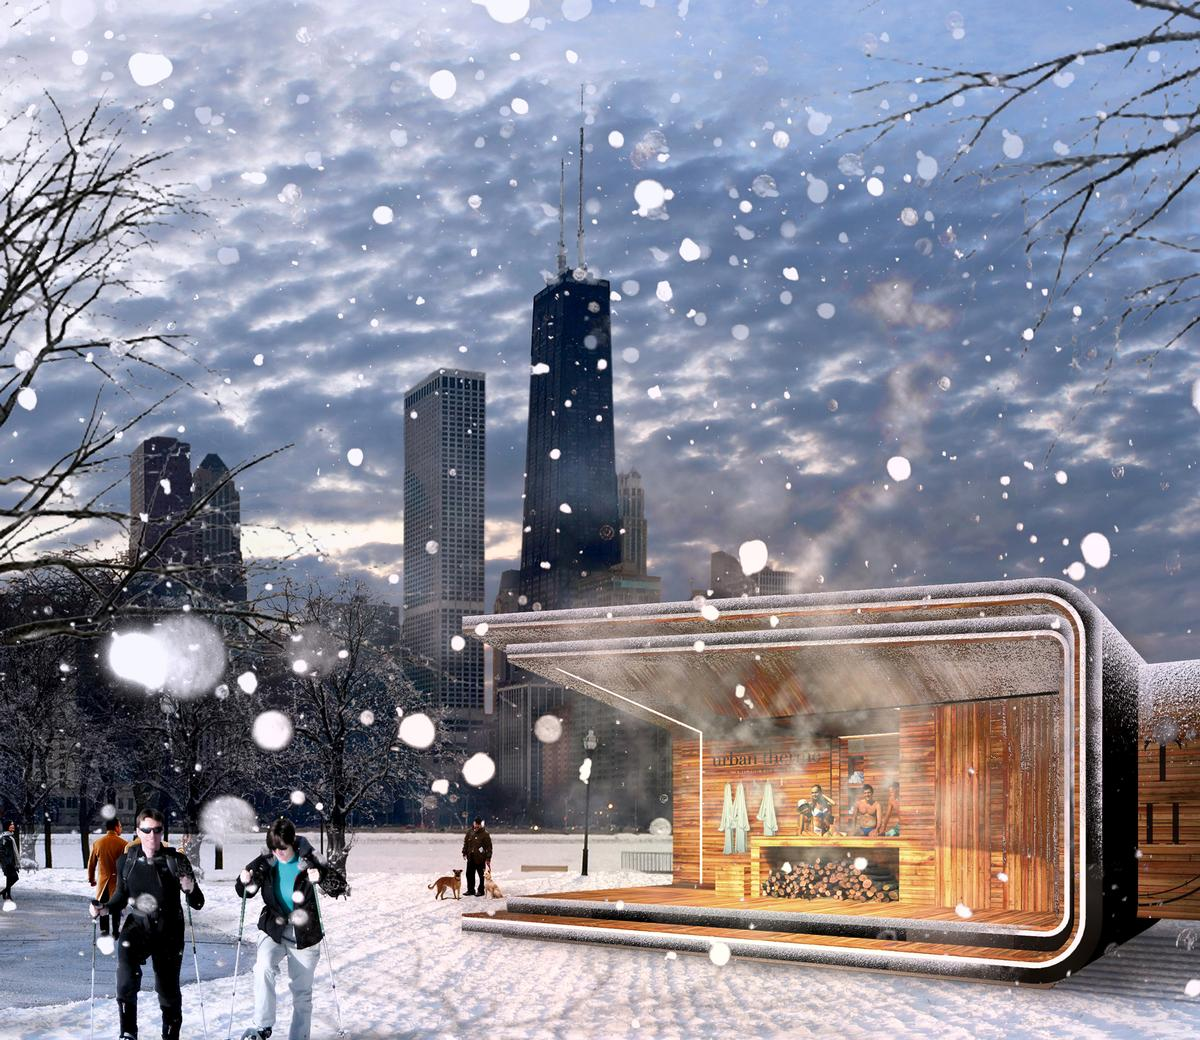 The spa kiosks were the team's idea to bring people to the lakefront during the cold winter months / Urban Therme